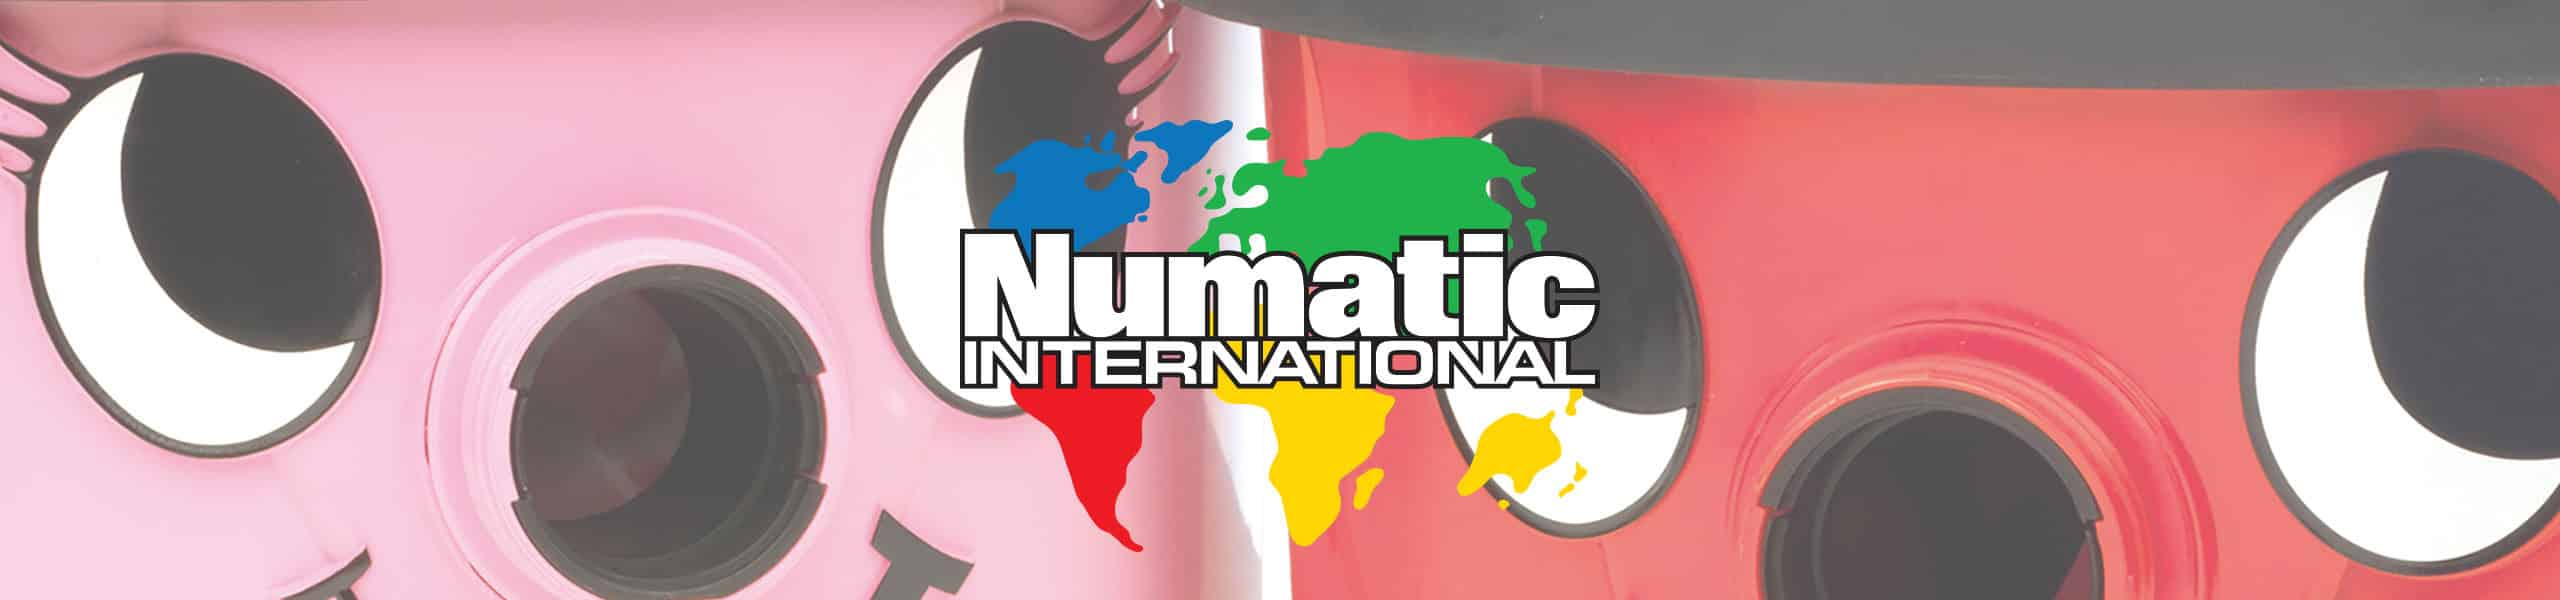 Numatic International Ltd graphic